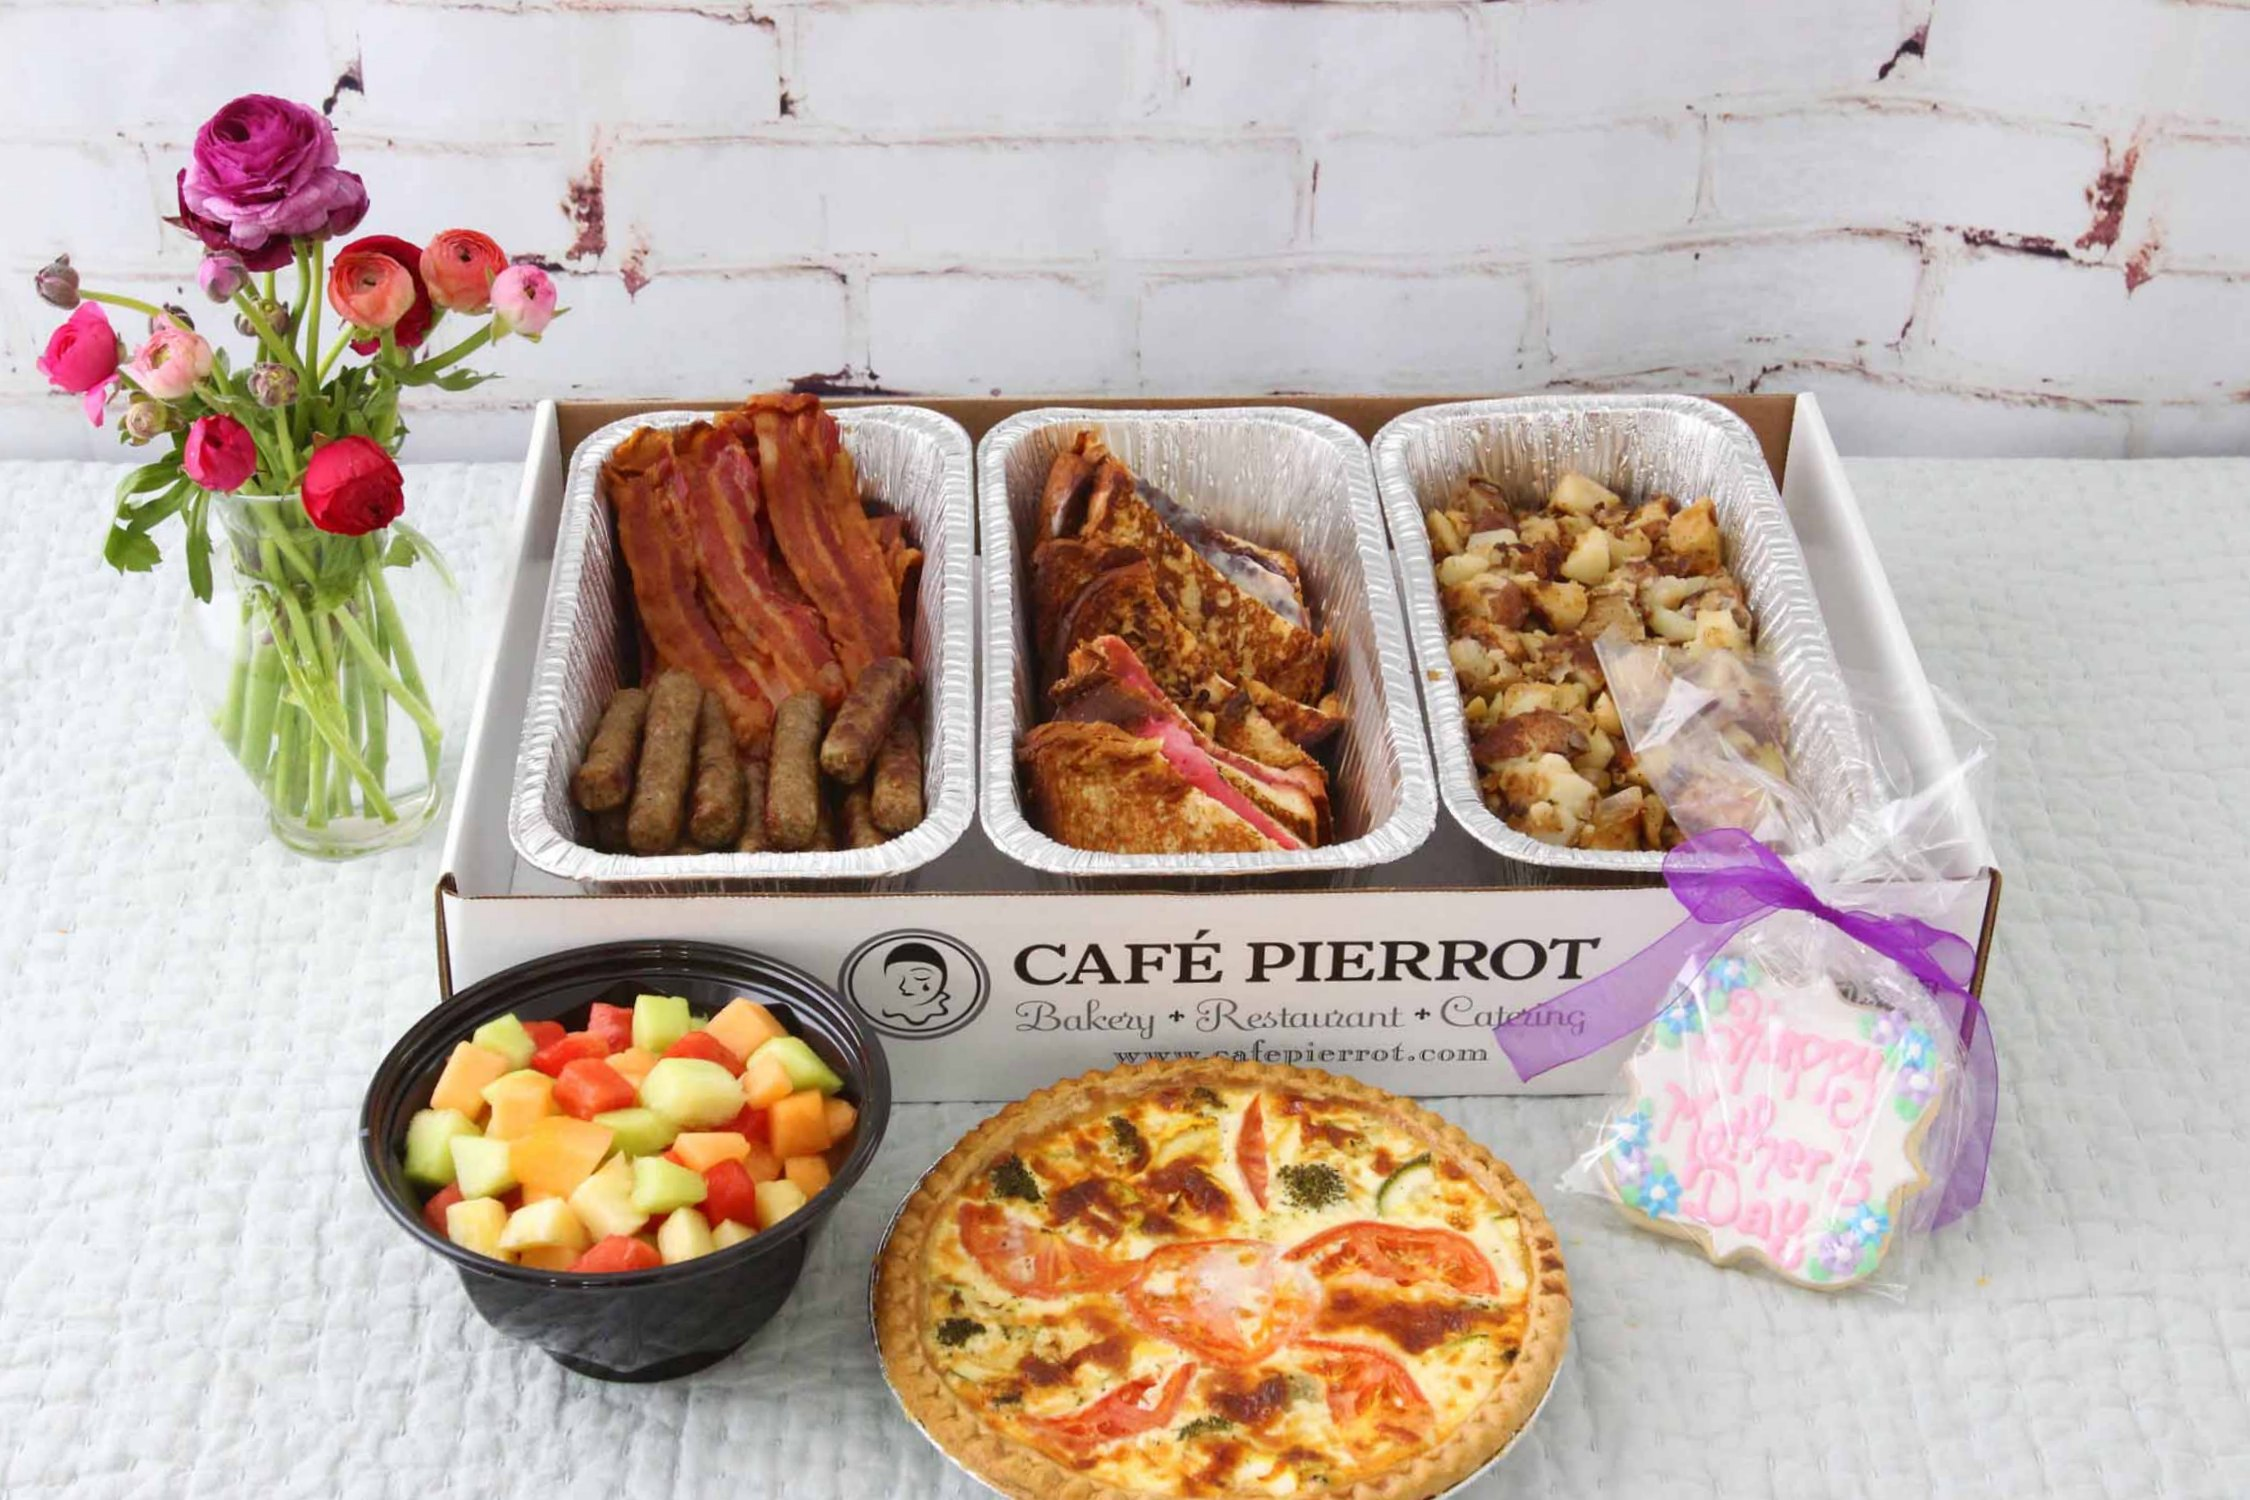 mother's day breakfast in bed catering from cafe pierrot in sussex county morris county nj